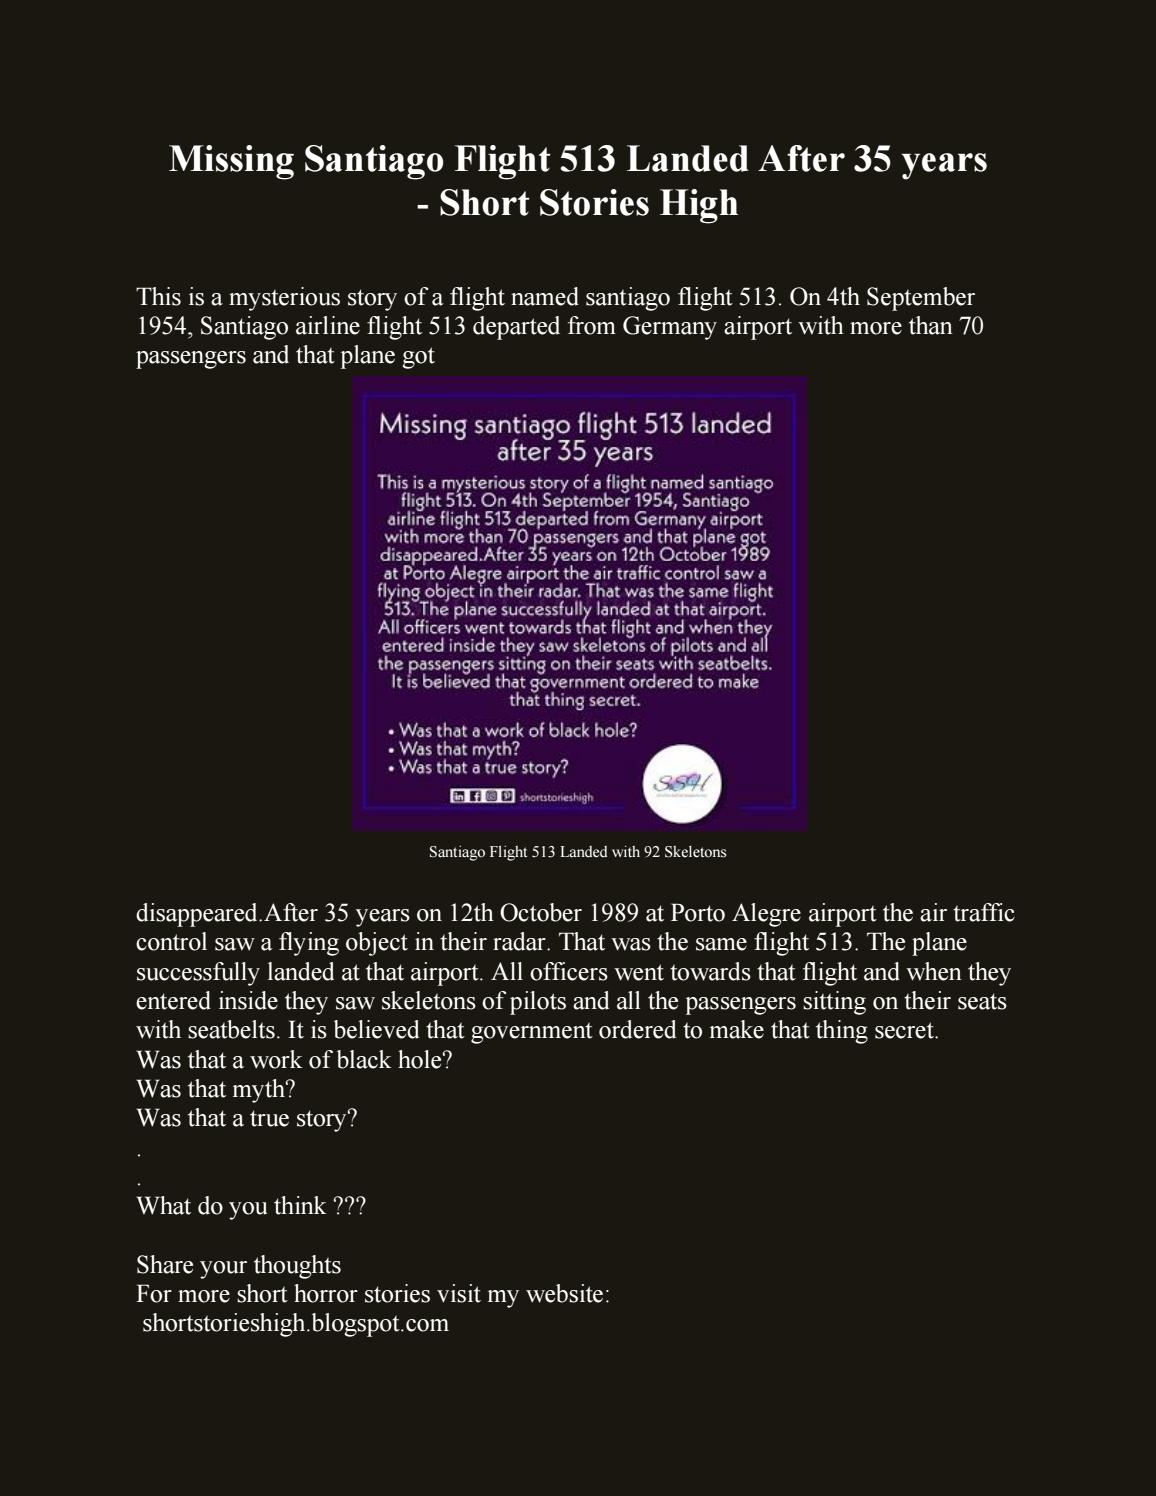 Missing Santiago Flight 513 Landed After 35 Years Short Stories High By Short Stories High Issuu